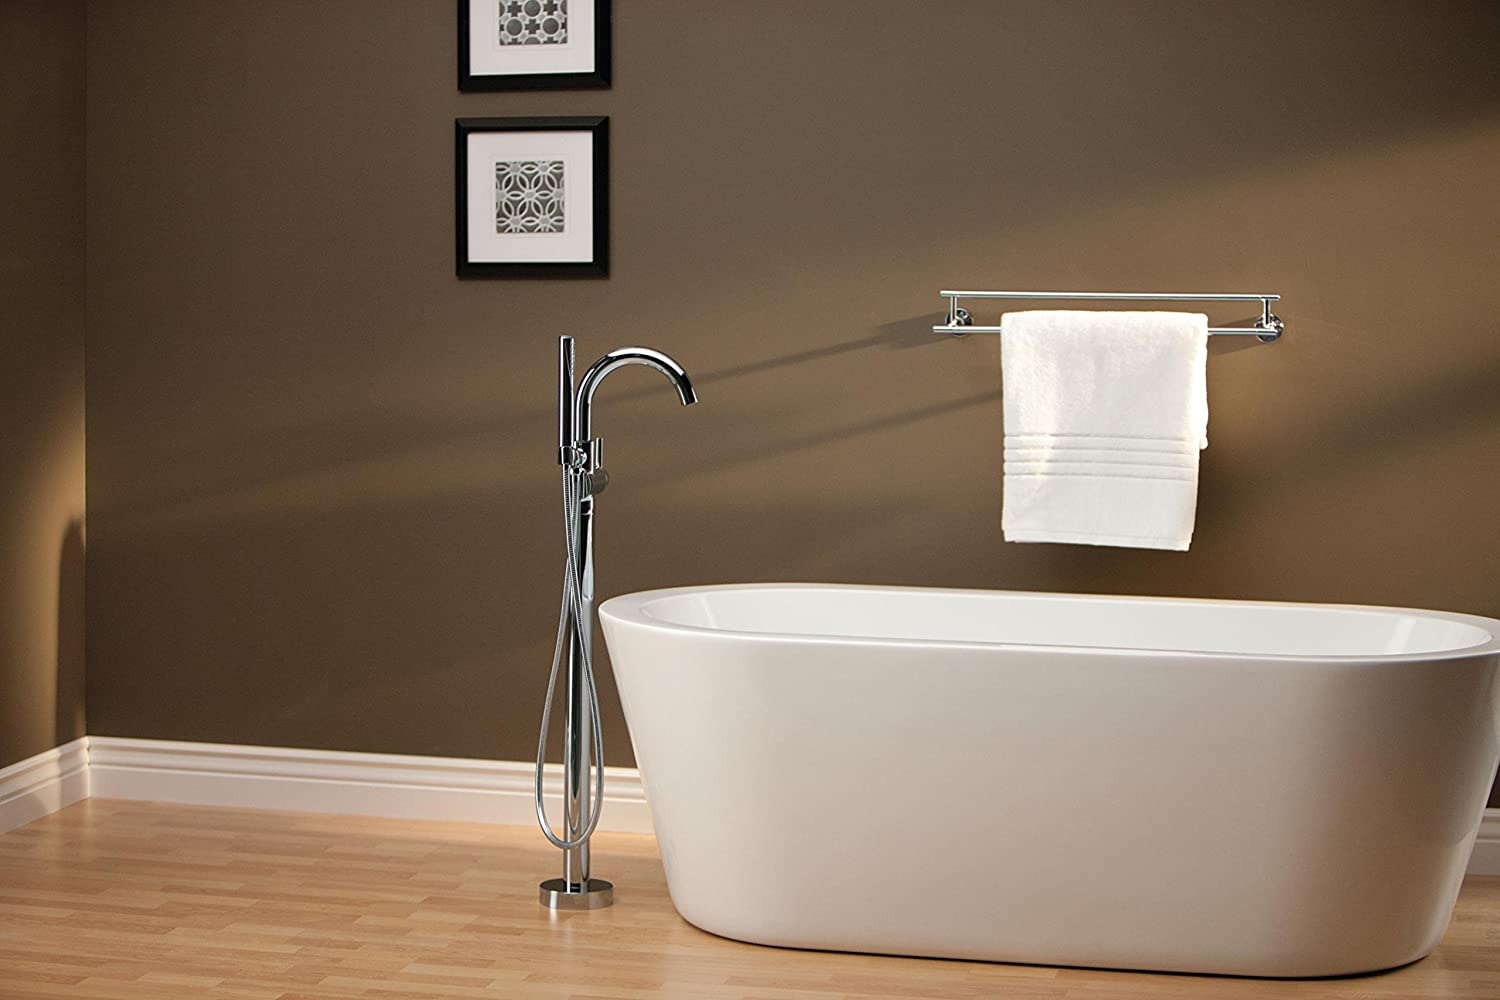 Delta Floor Mount Tub Filler